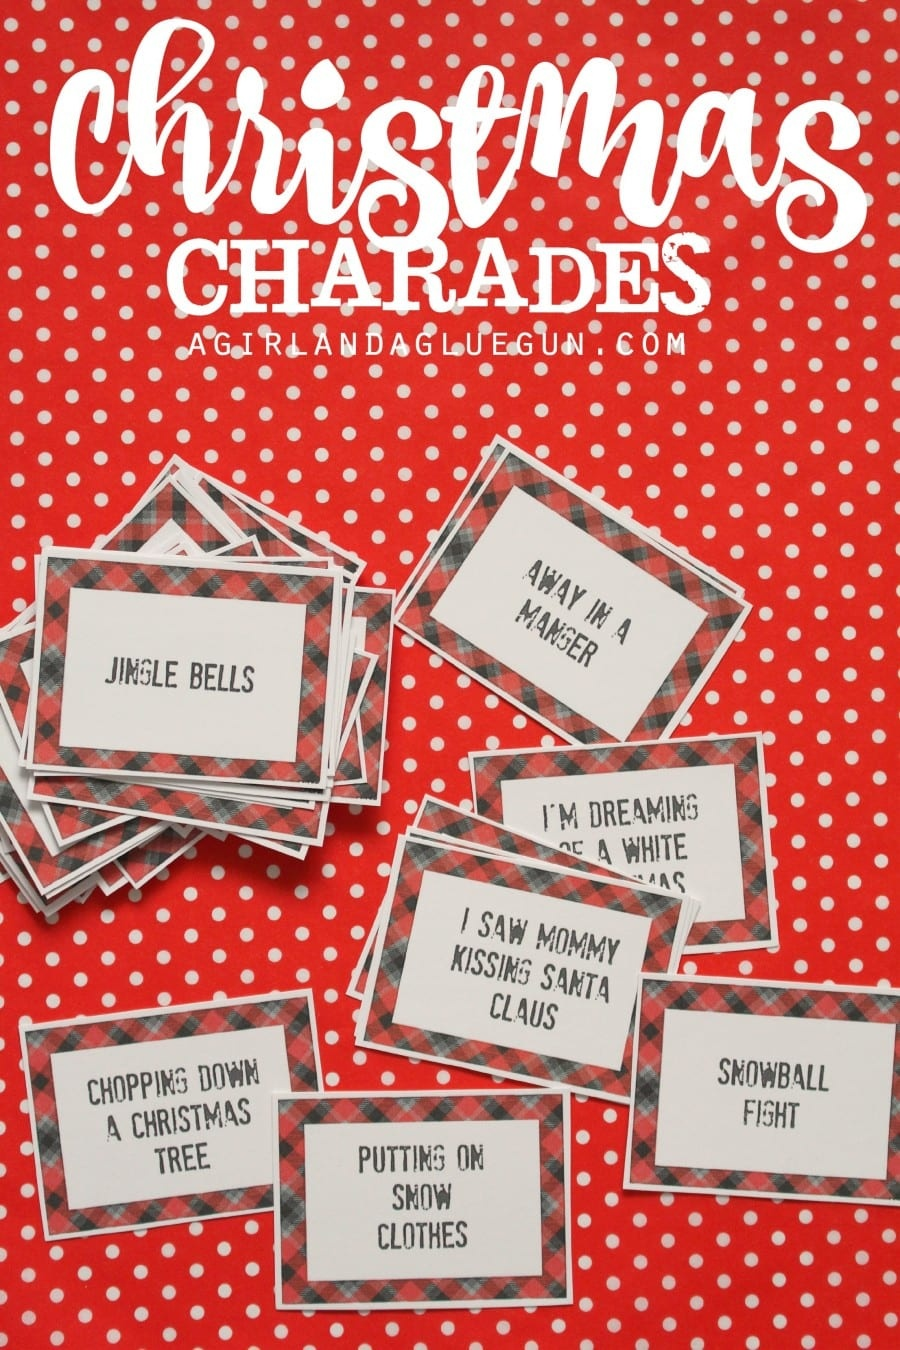 Christmas Charades Game And Free Printable Roundup! - A Girl And A - Free Printable Religious Christmas Games